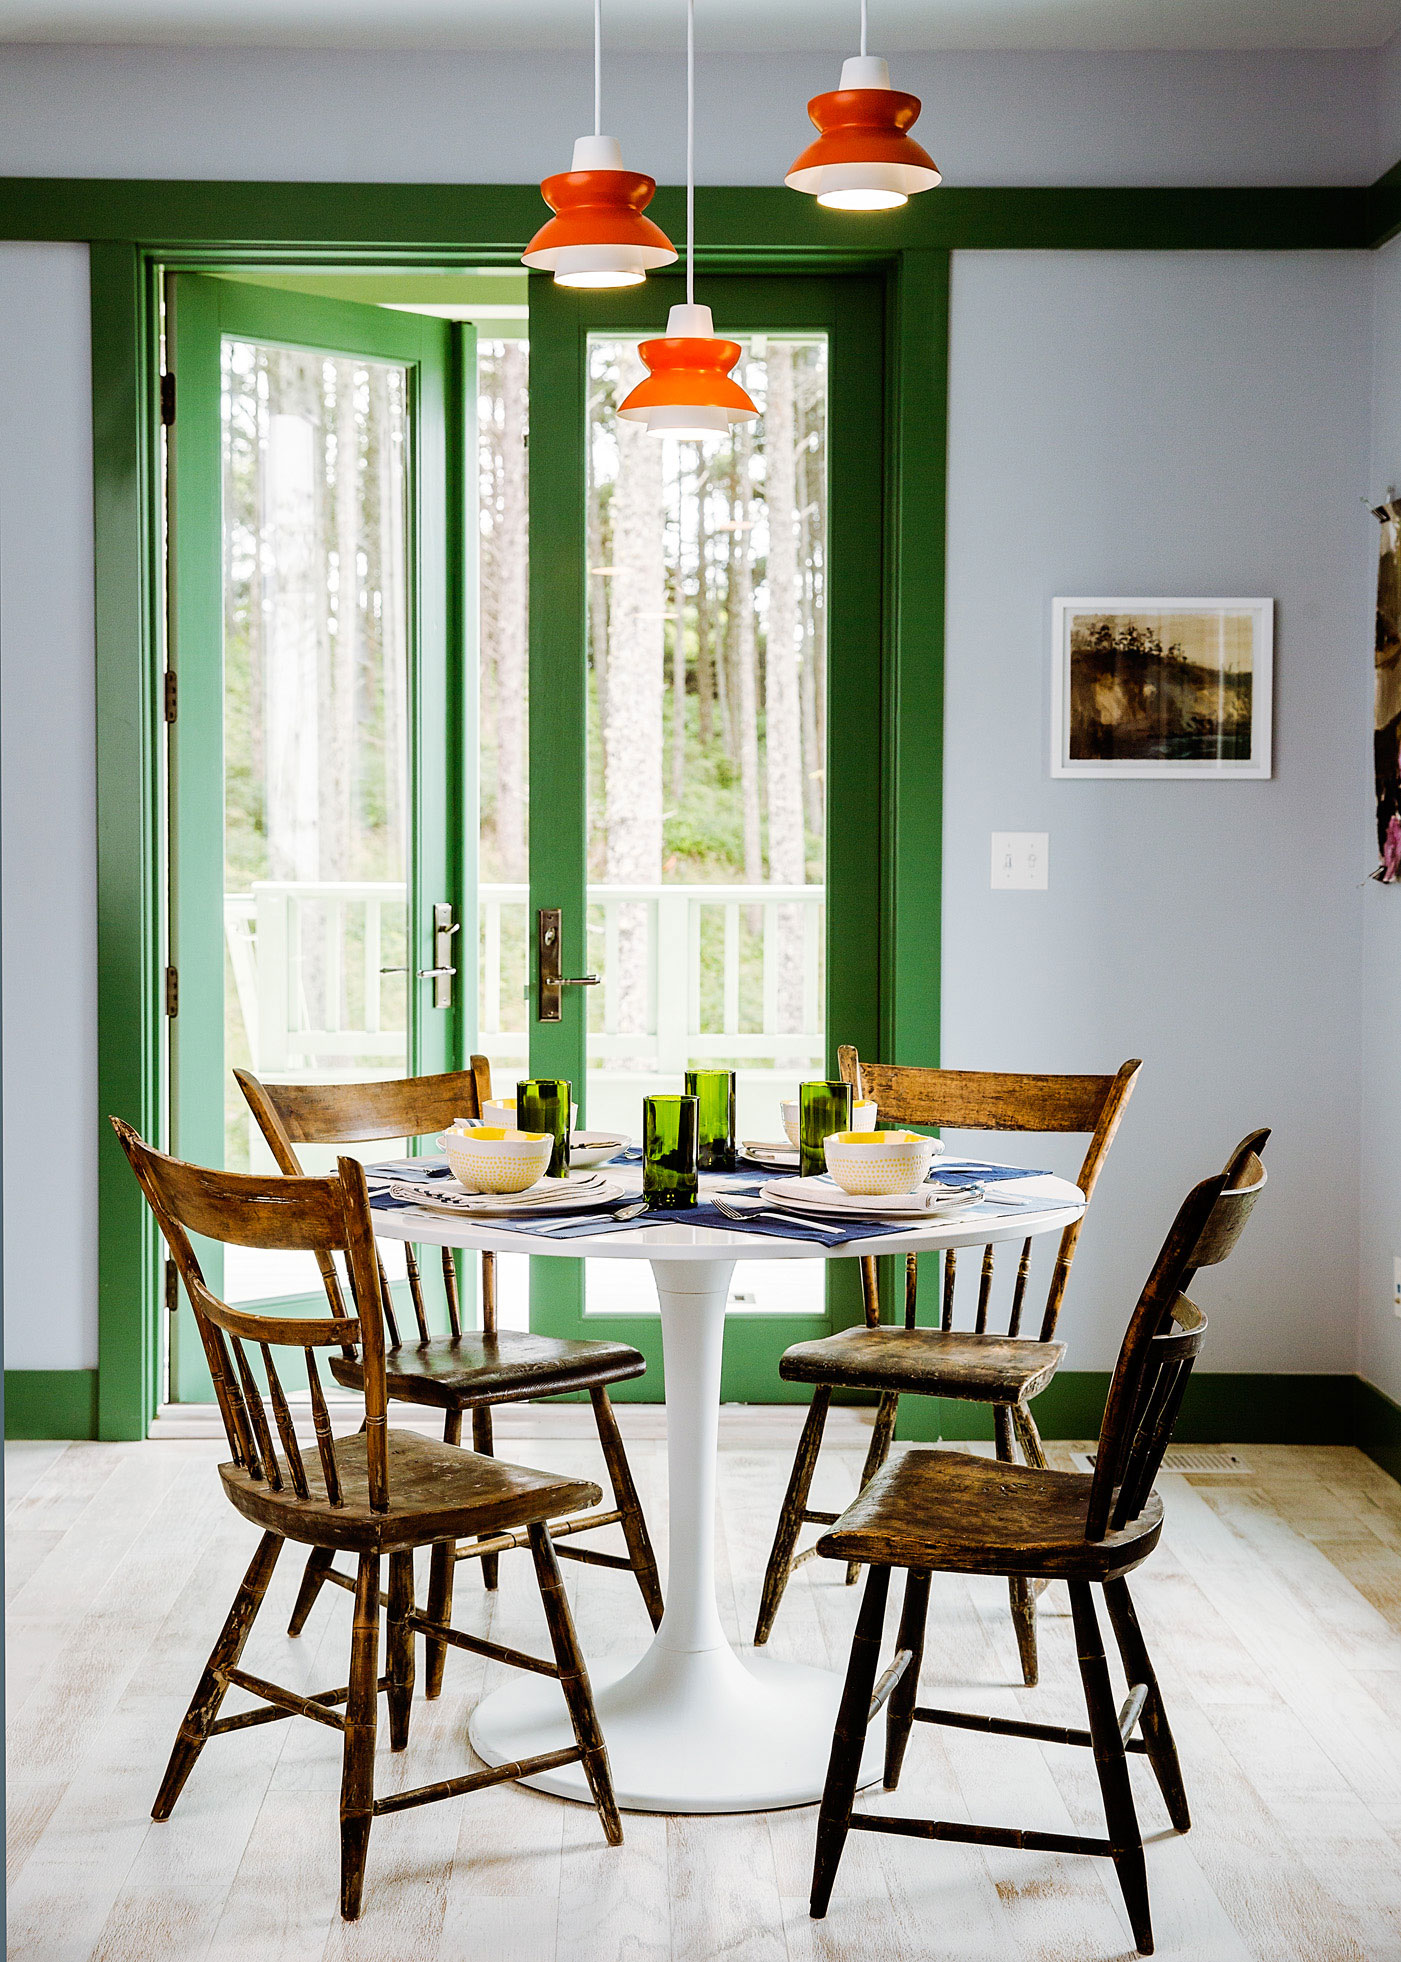 pictures of dining rooms. Mix Genres Pictures Of Dining Rooms